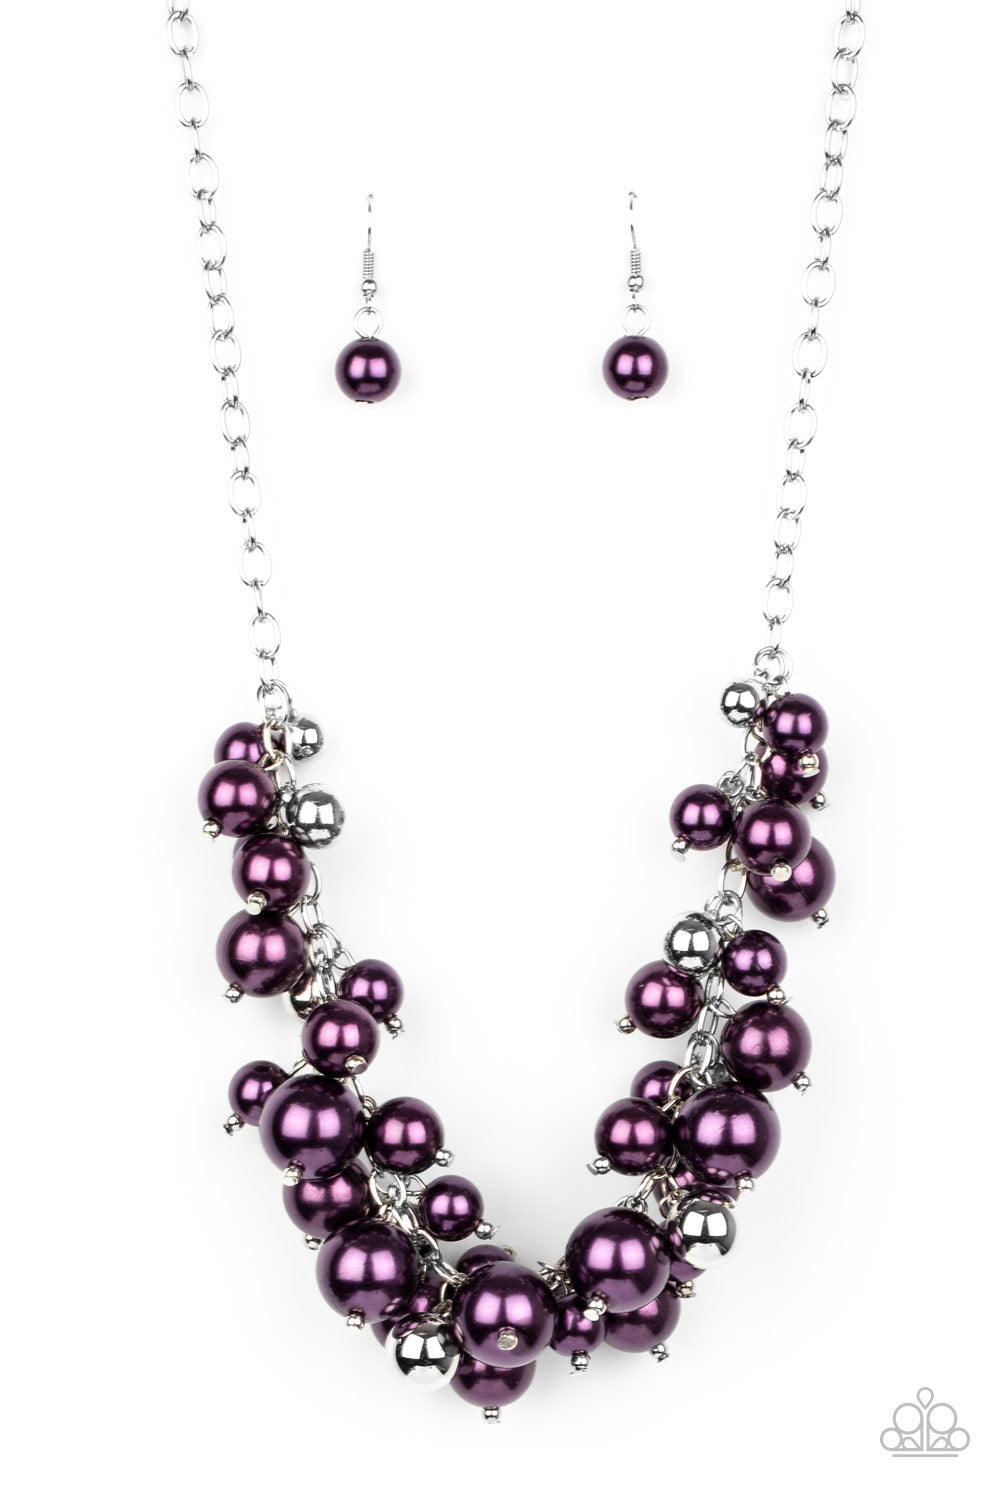 five-dollar-jewelry-uptown-upgrade-purple-necklace-paparazzi-accessories